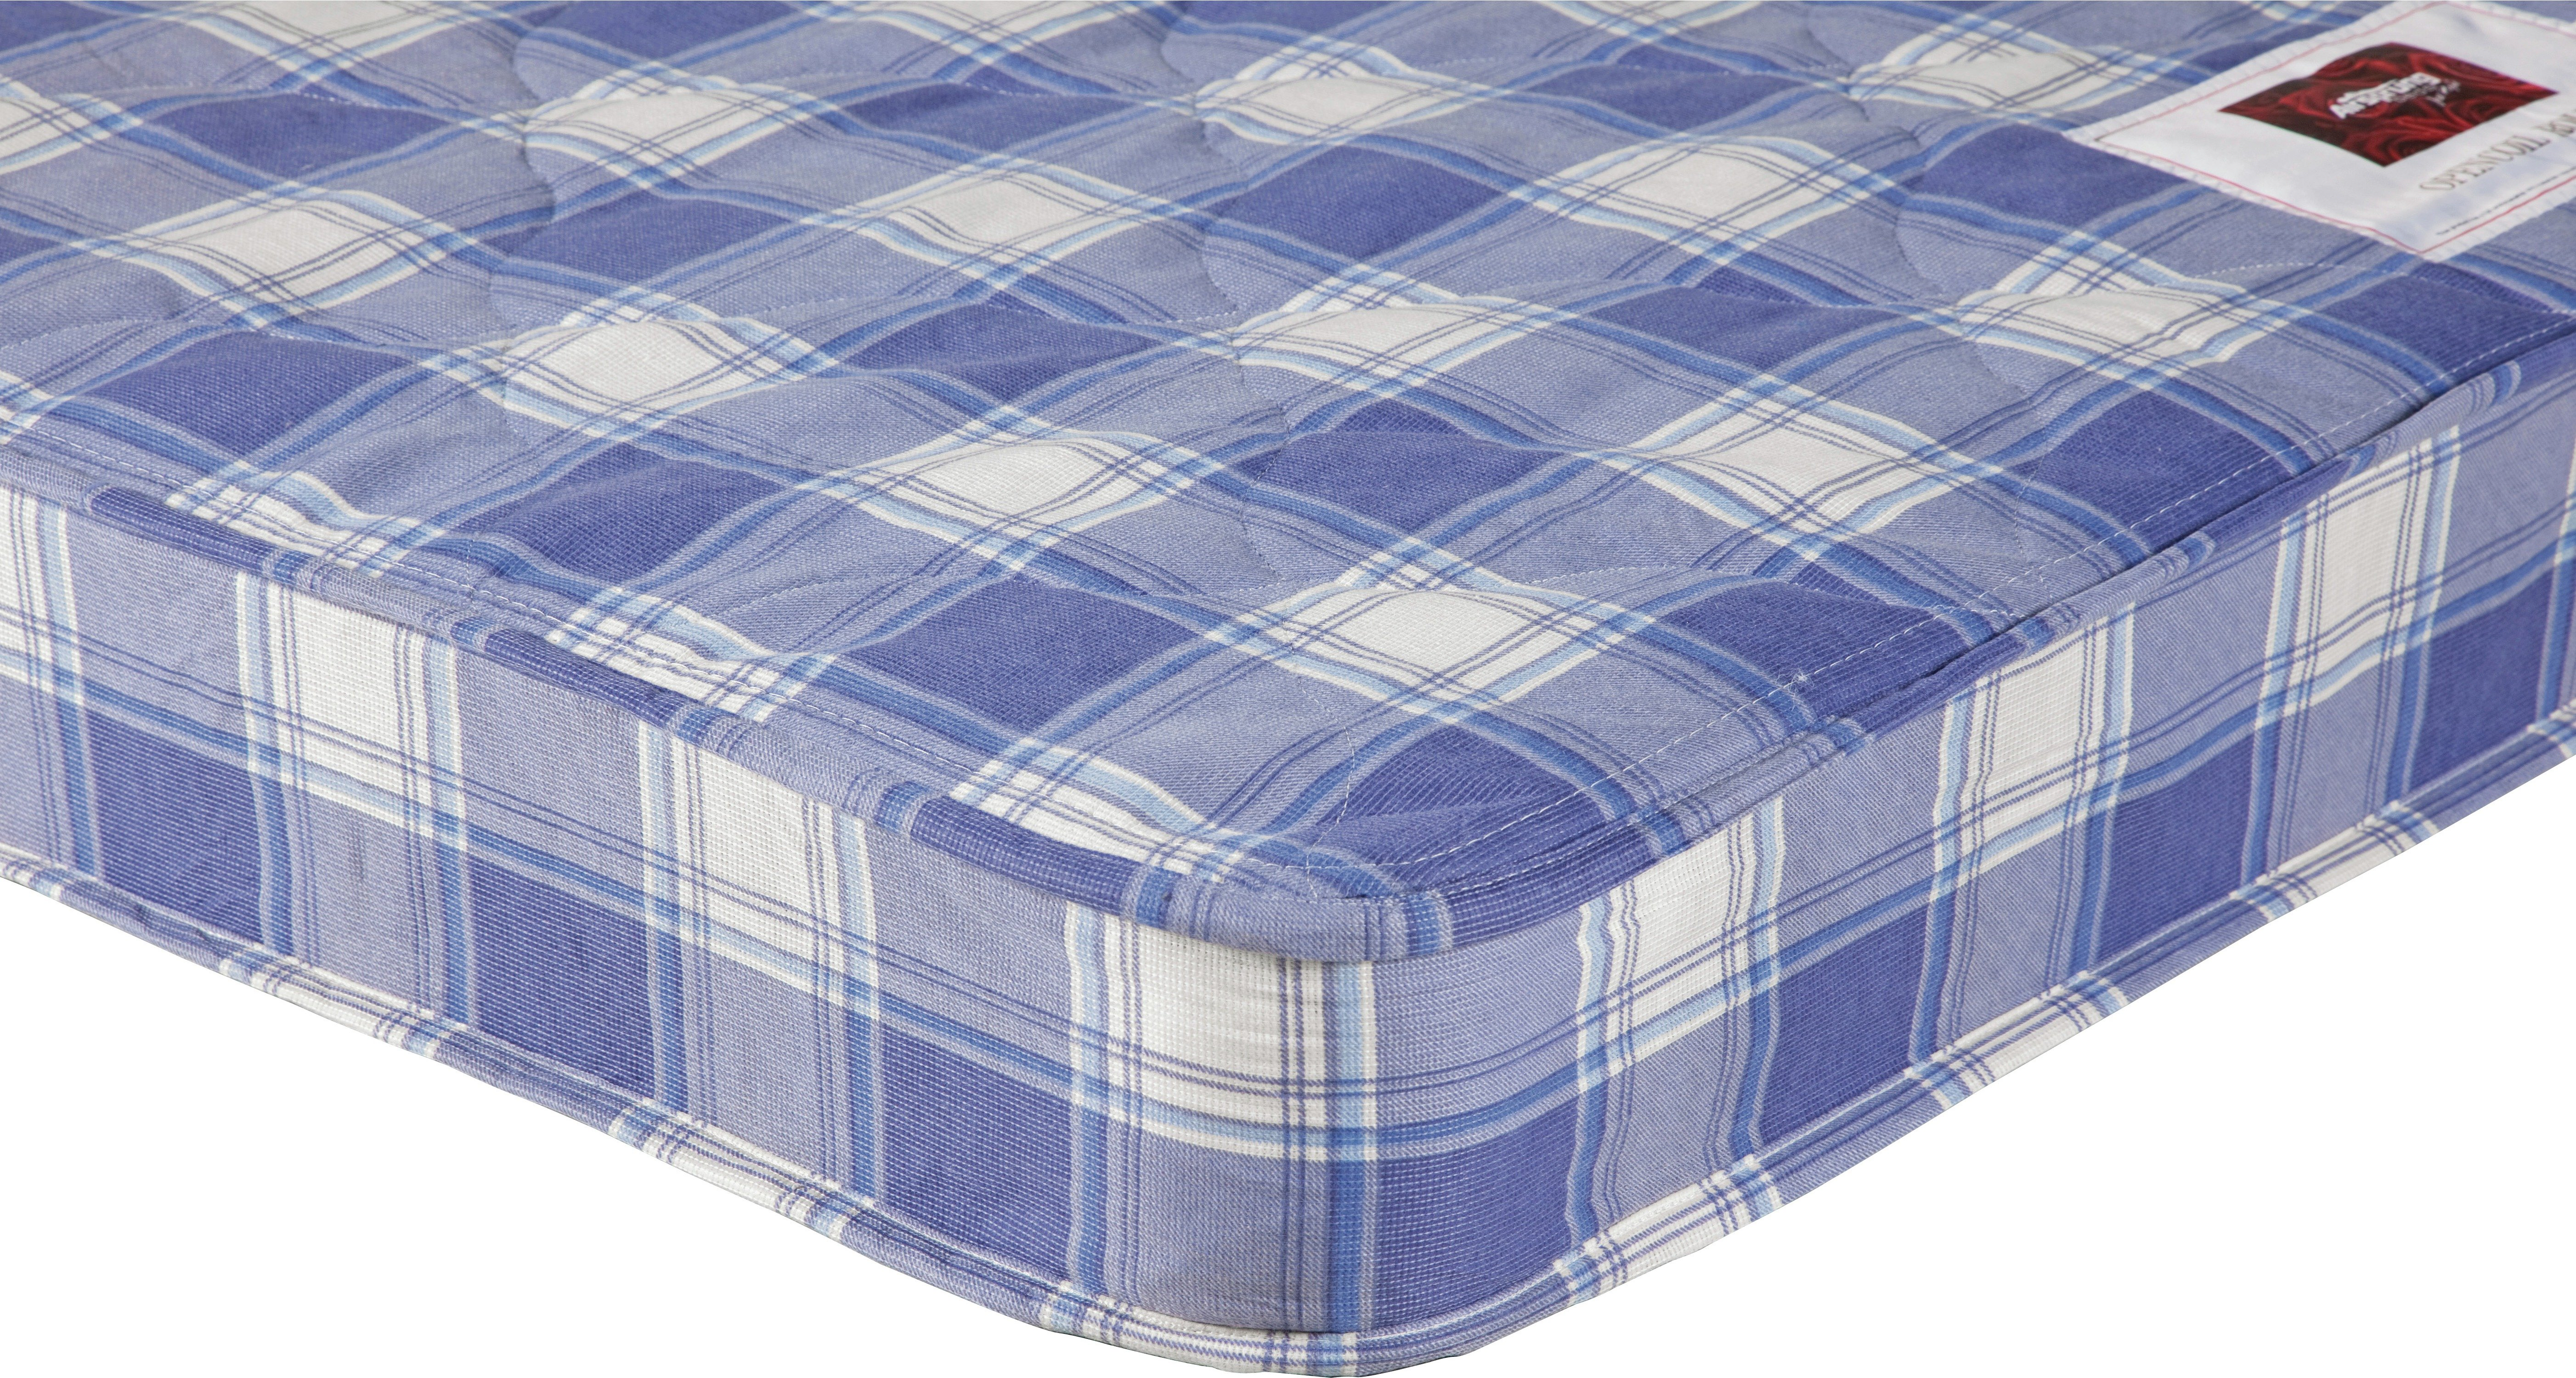 Mattress Mattresses Shop By Size How To Choose The